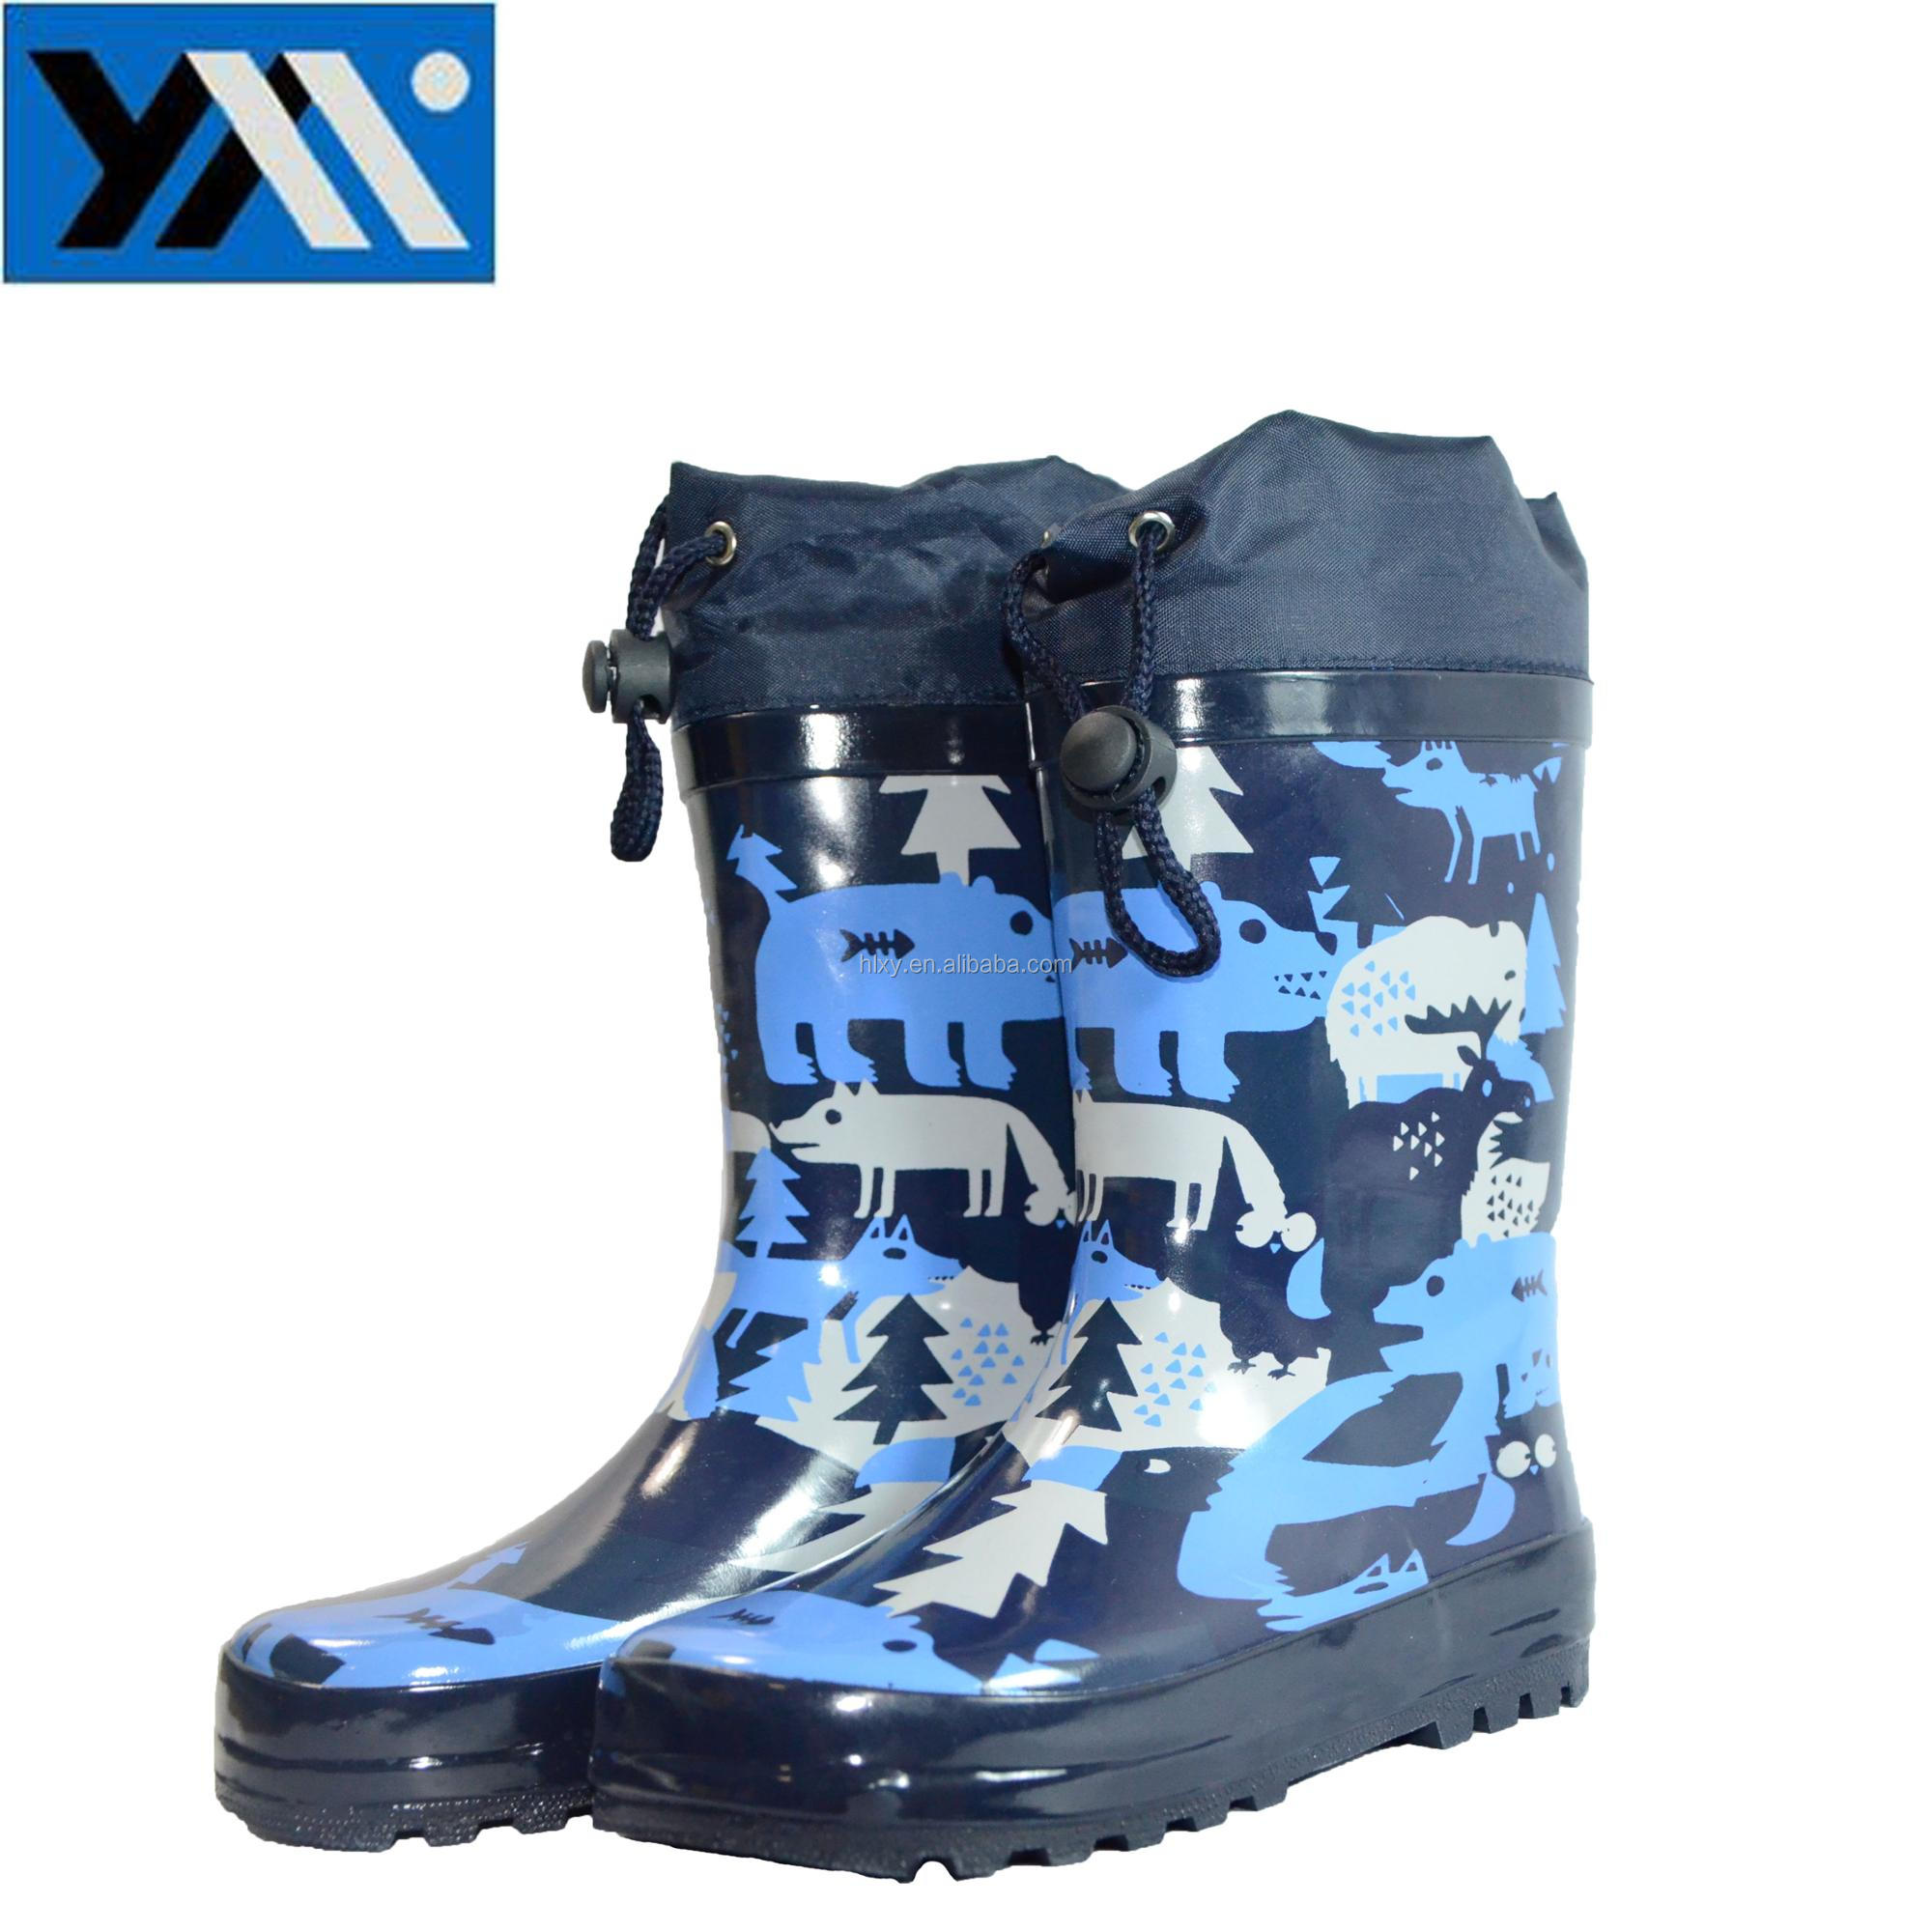 fashion army green kid's rubber rain boots wellington boots